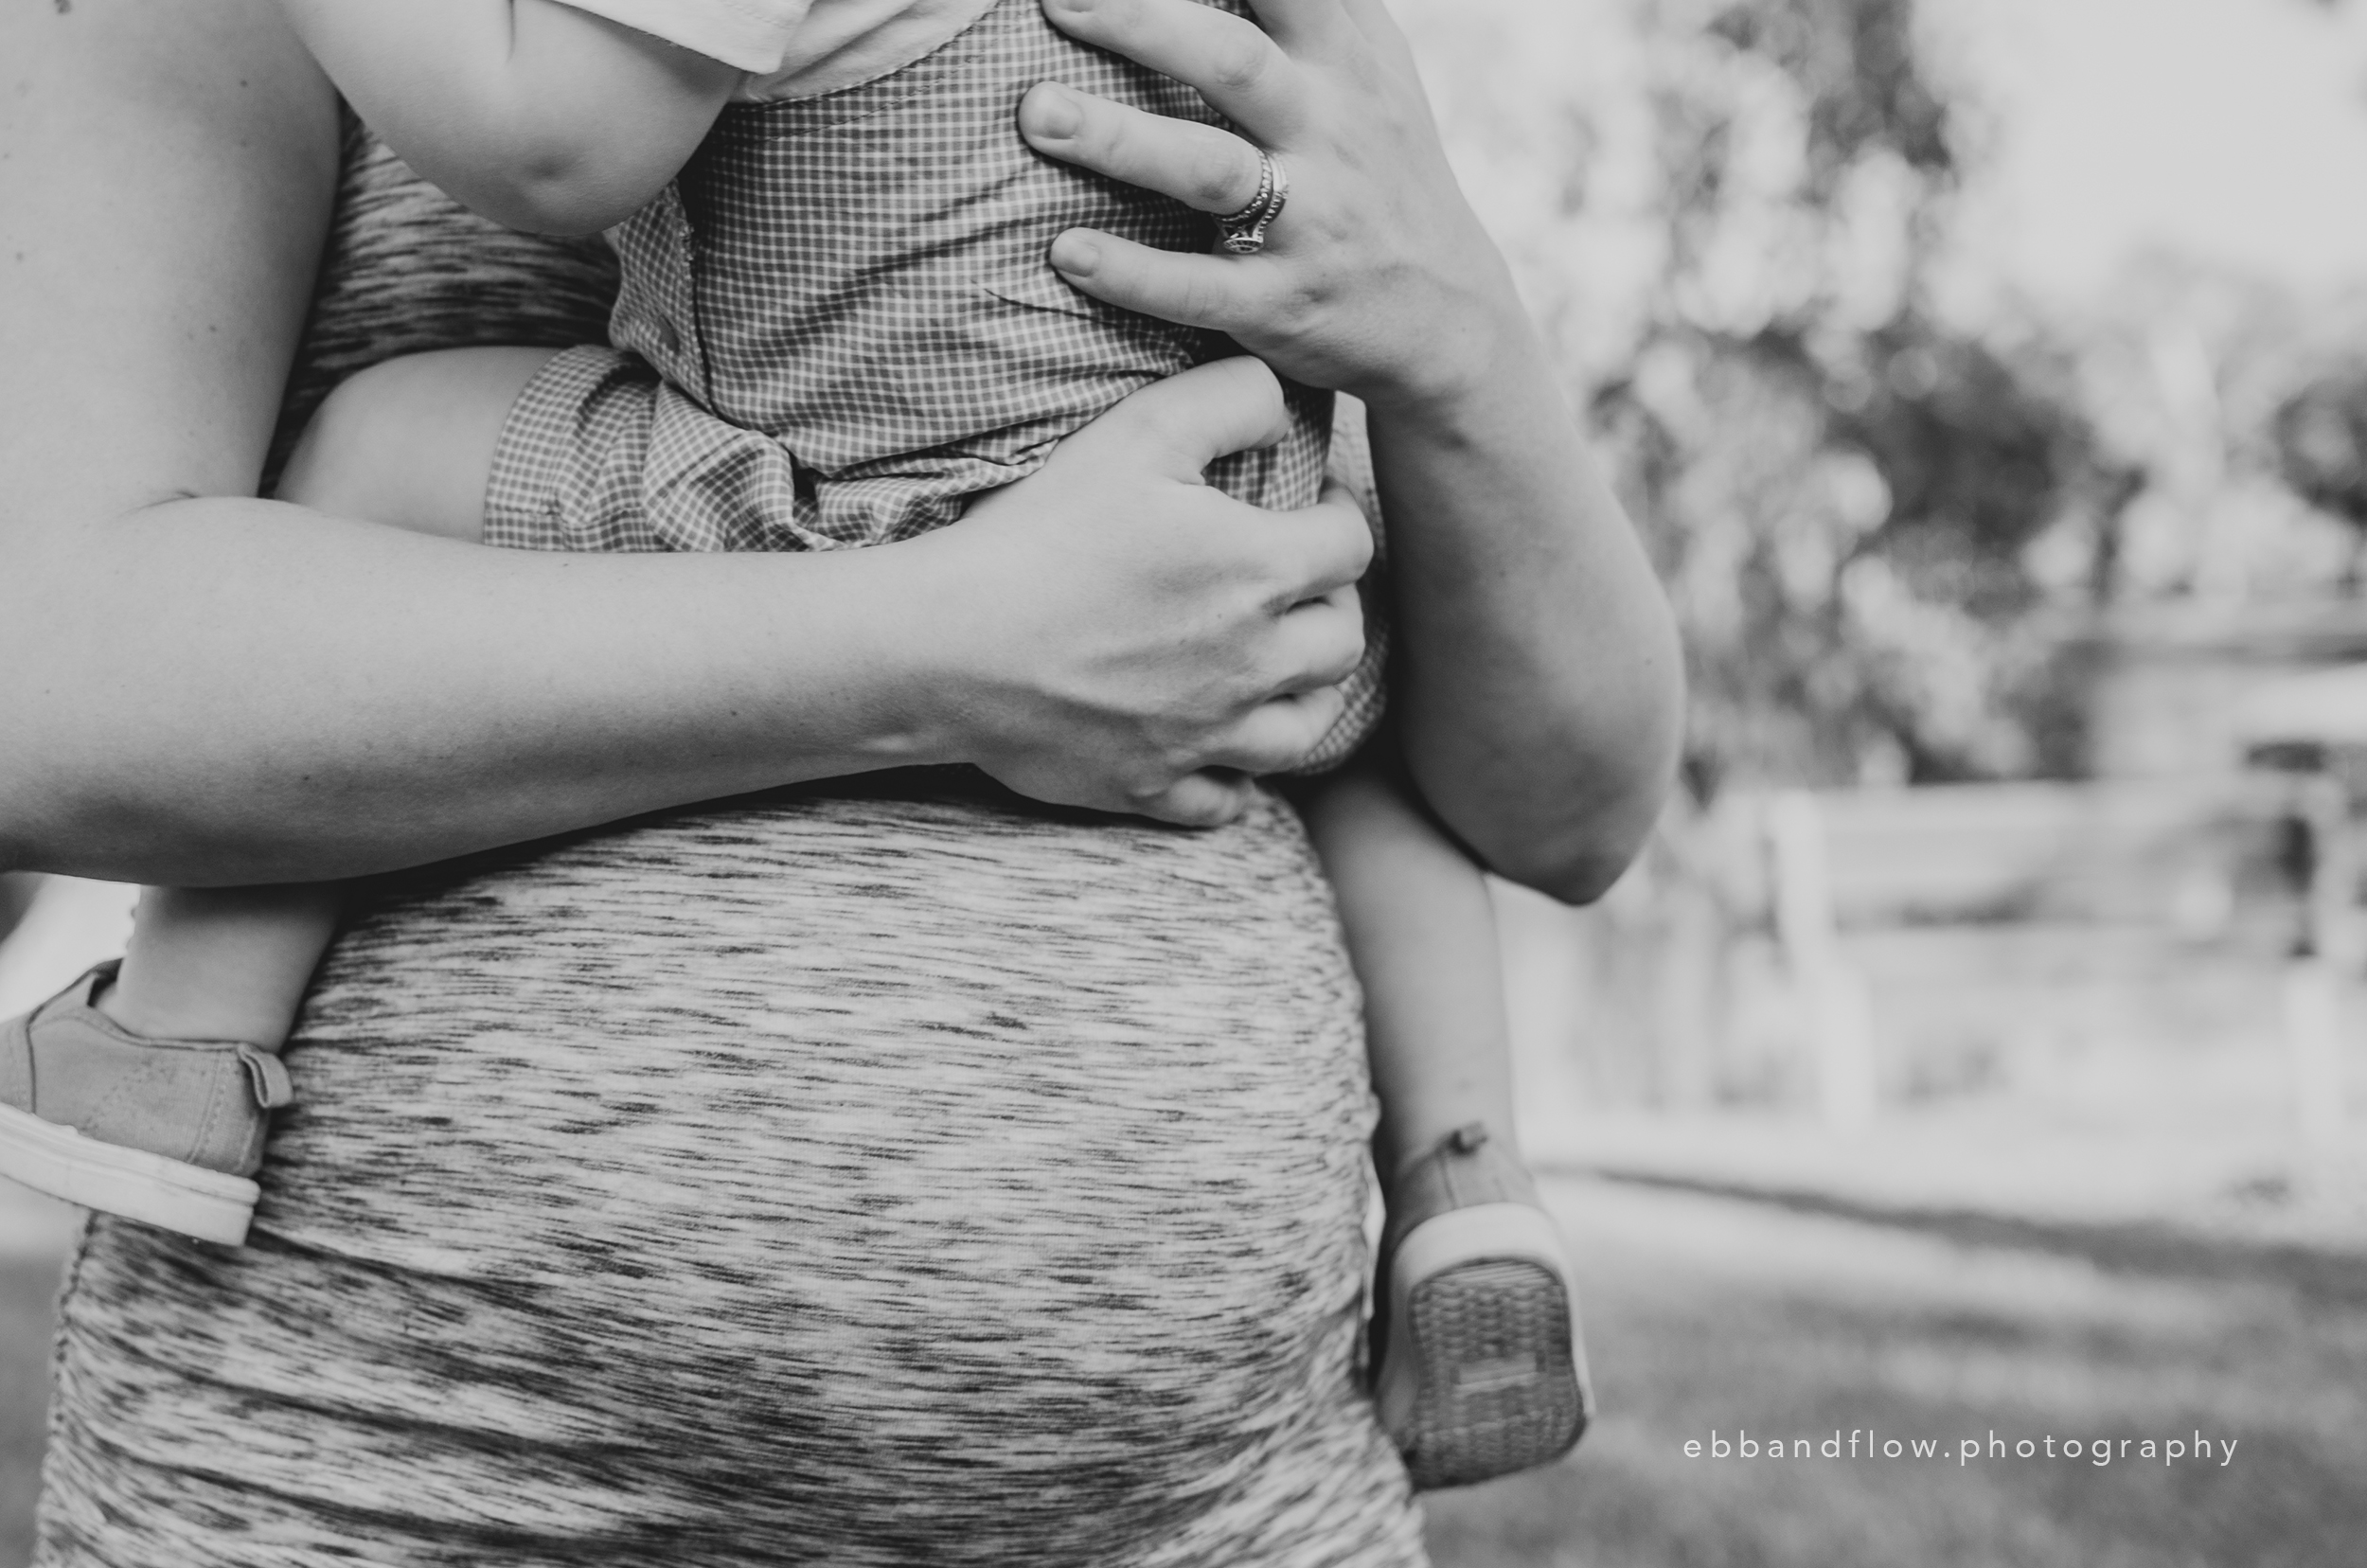 Fort Pierce - Treasure Coast Maternity Photographer - Ebb and Flow Photography